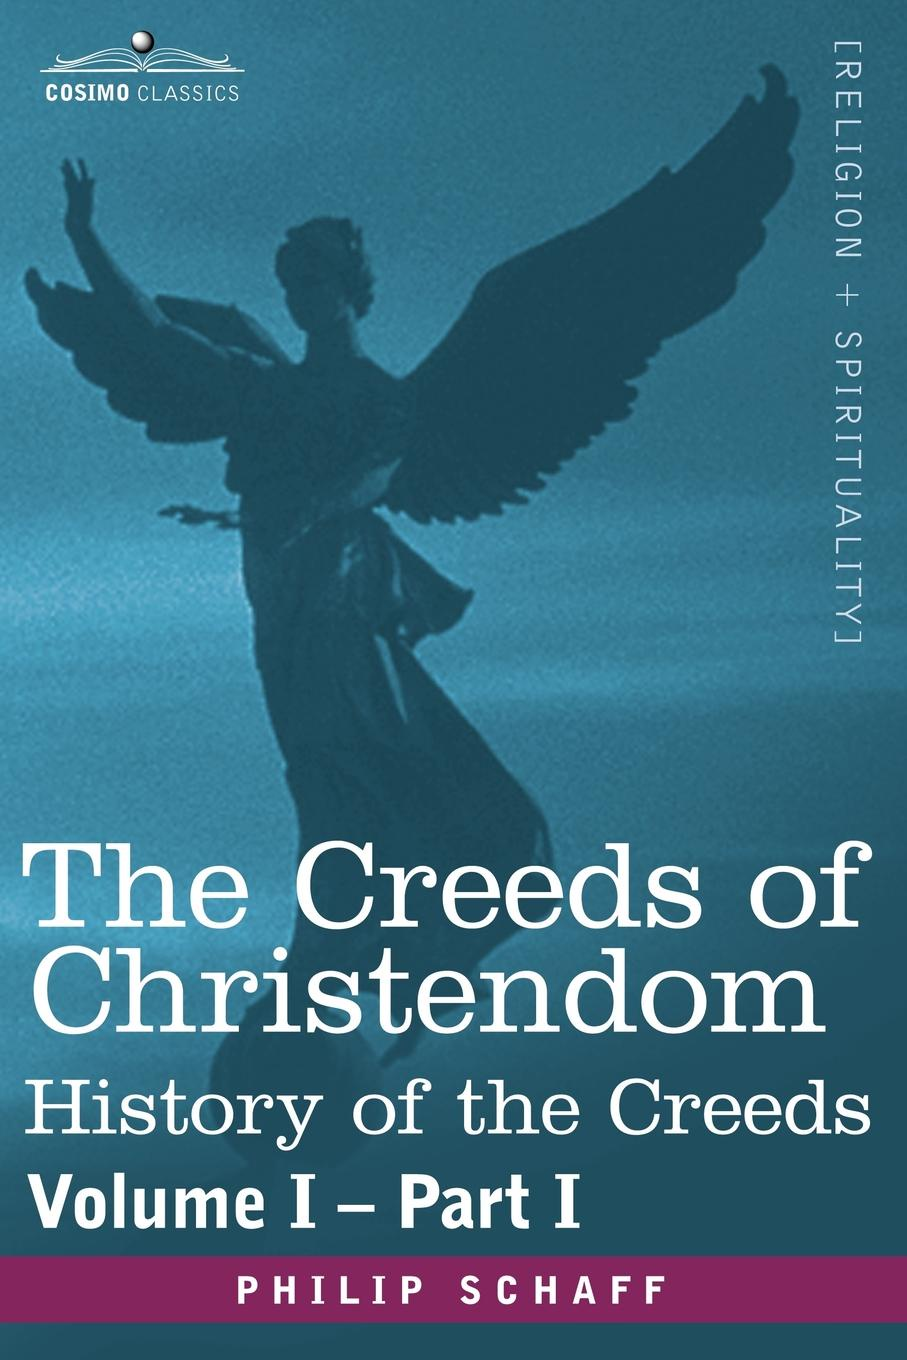 Philip Schaff The Creeds of Christendom. History of the Creeds - Volume I, Part I bente friedrich historical introductions to the symbolical books of the evangelical lutheran church